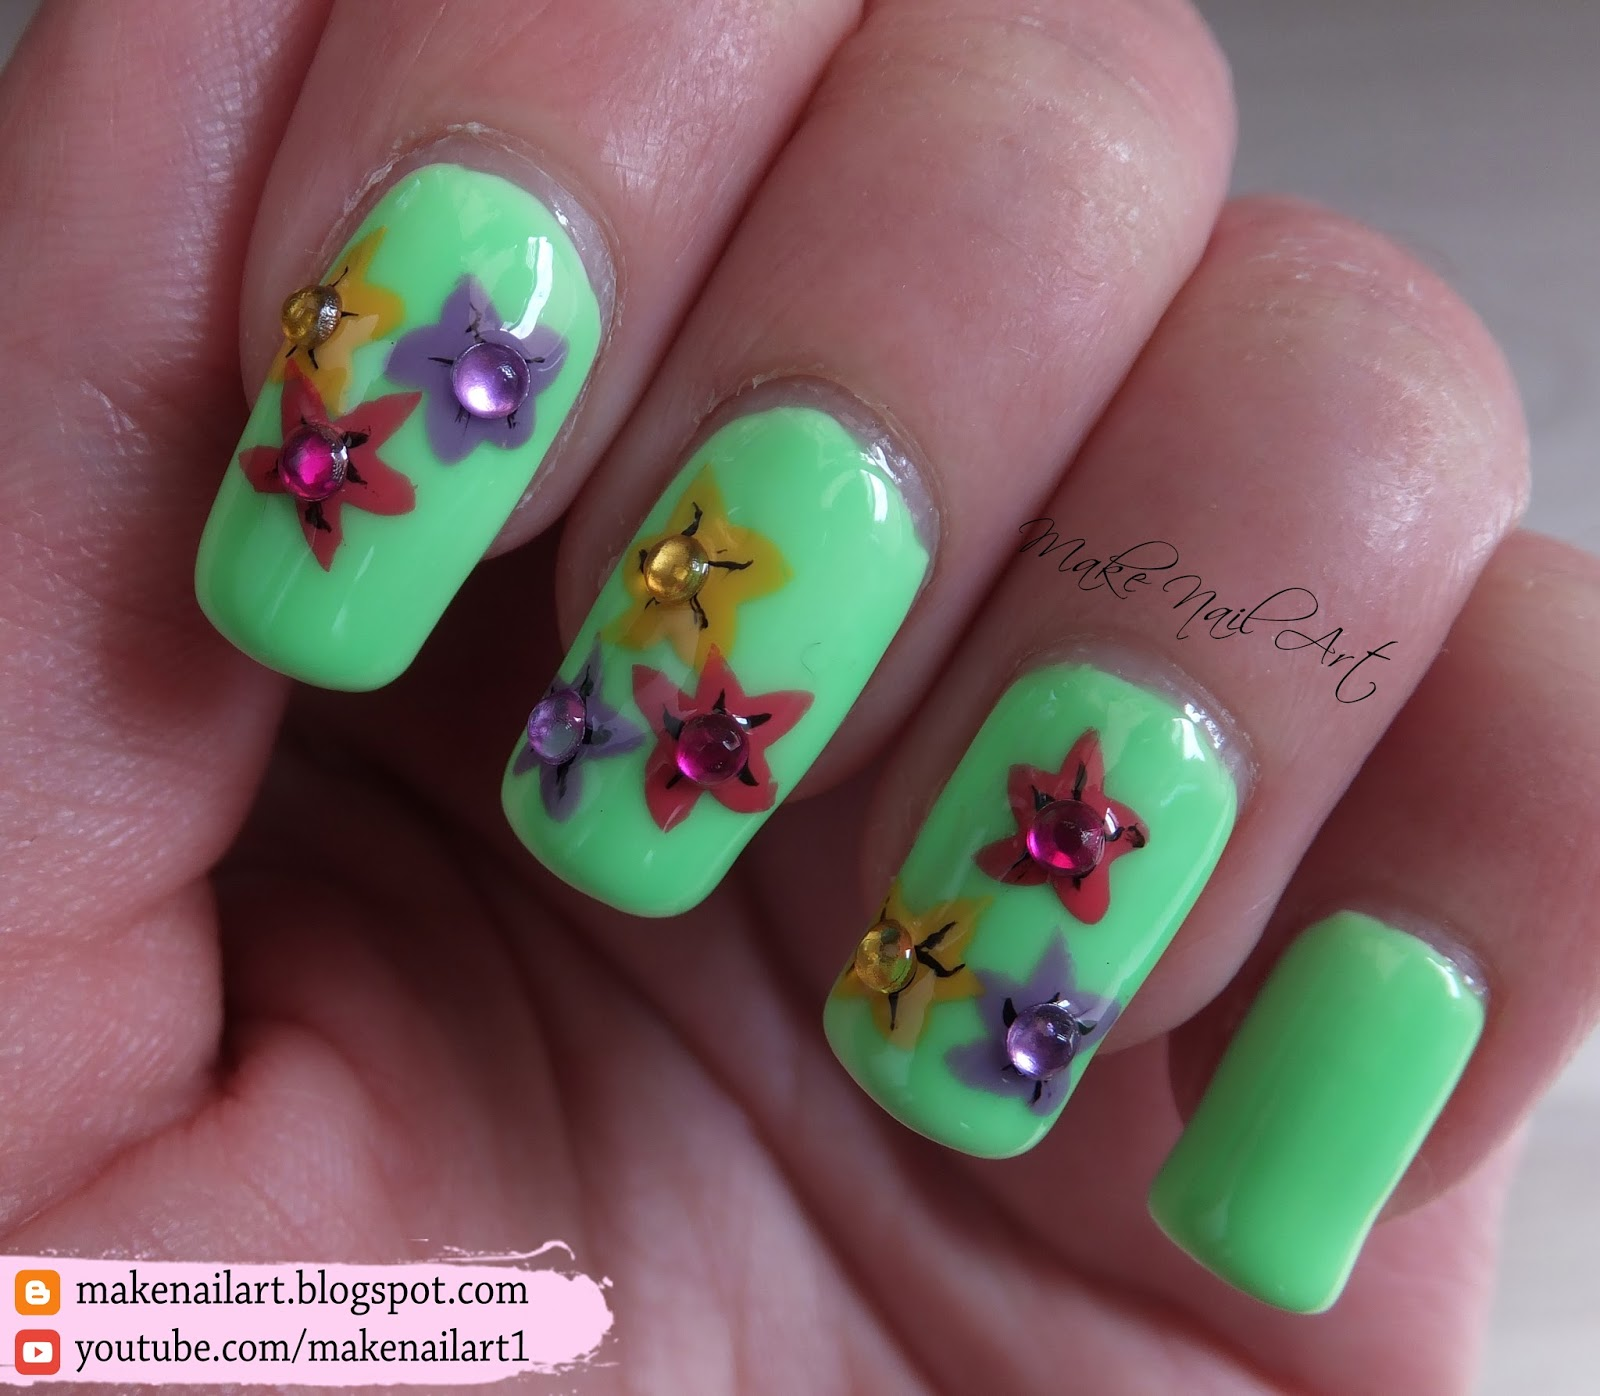 Make nail art easy spring flowers nail art design tutorial its really easy and fast way to create cute floral designs mightylinksfo